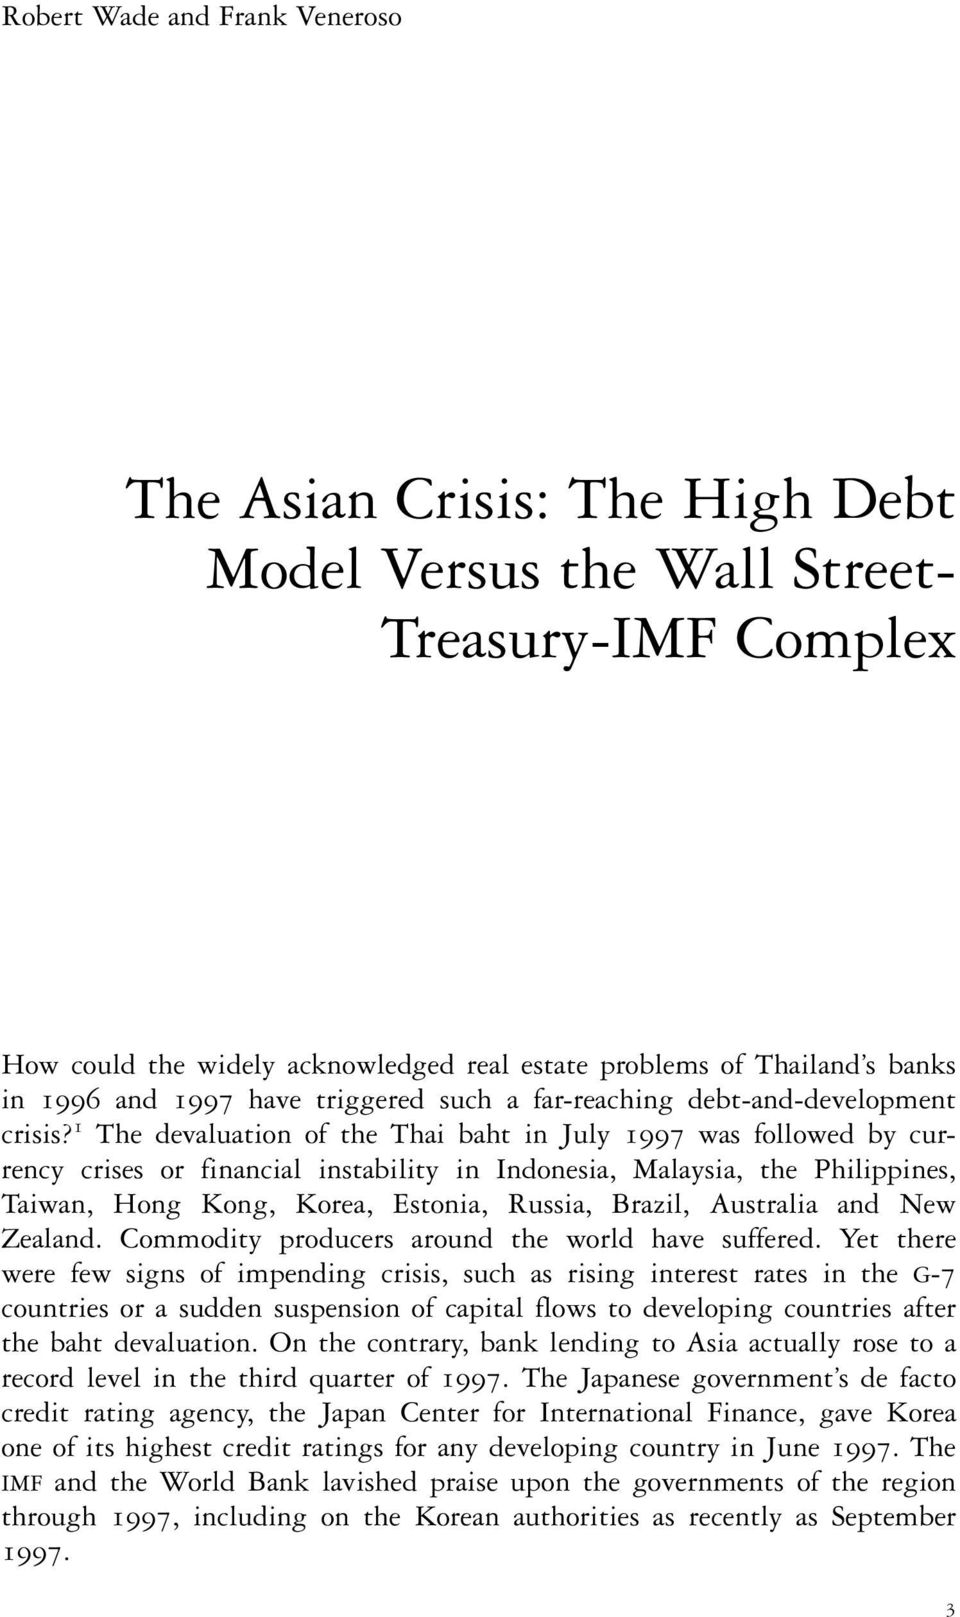 1 The devaluation of the Thai baht in July 1997 was followed by currency crises or financial instability in Indonesia, Malaysia, the Philippines, Taiwan, Hong Kong, Korea, Estonia, Russia, Brazil,